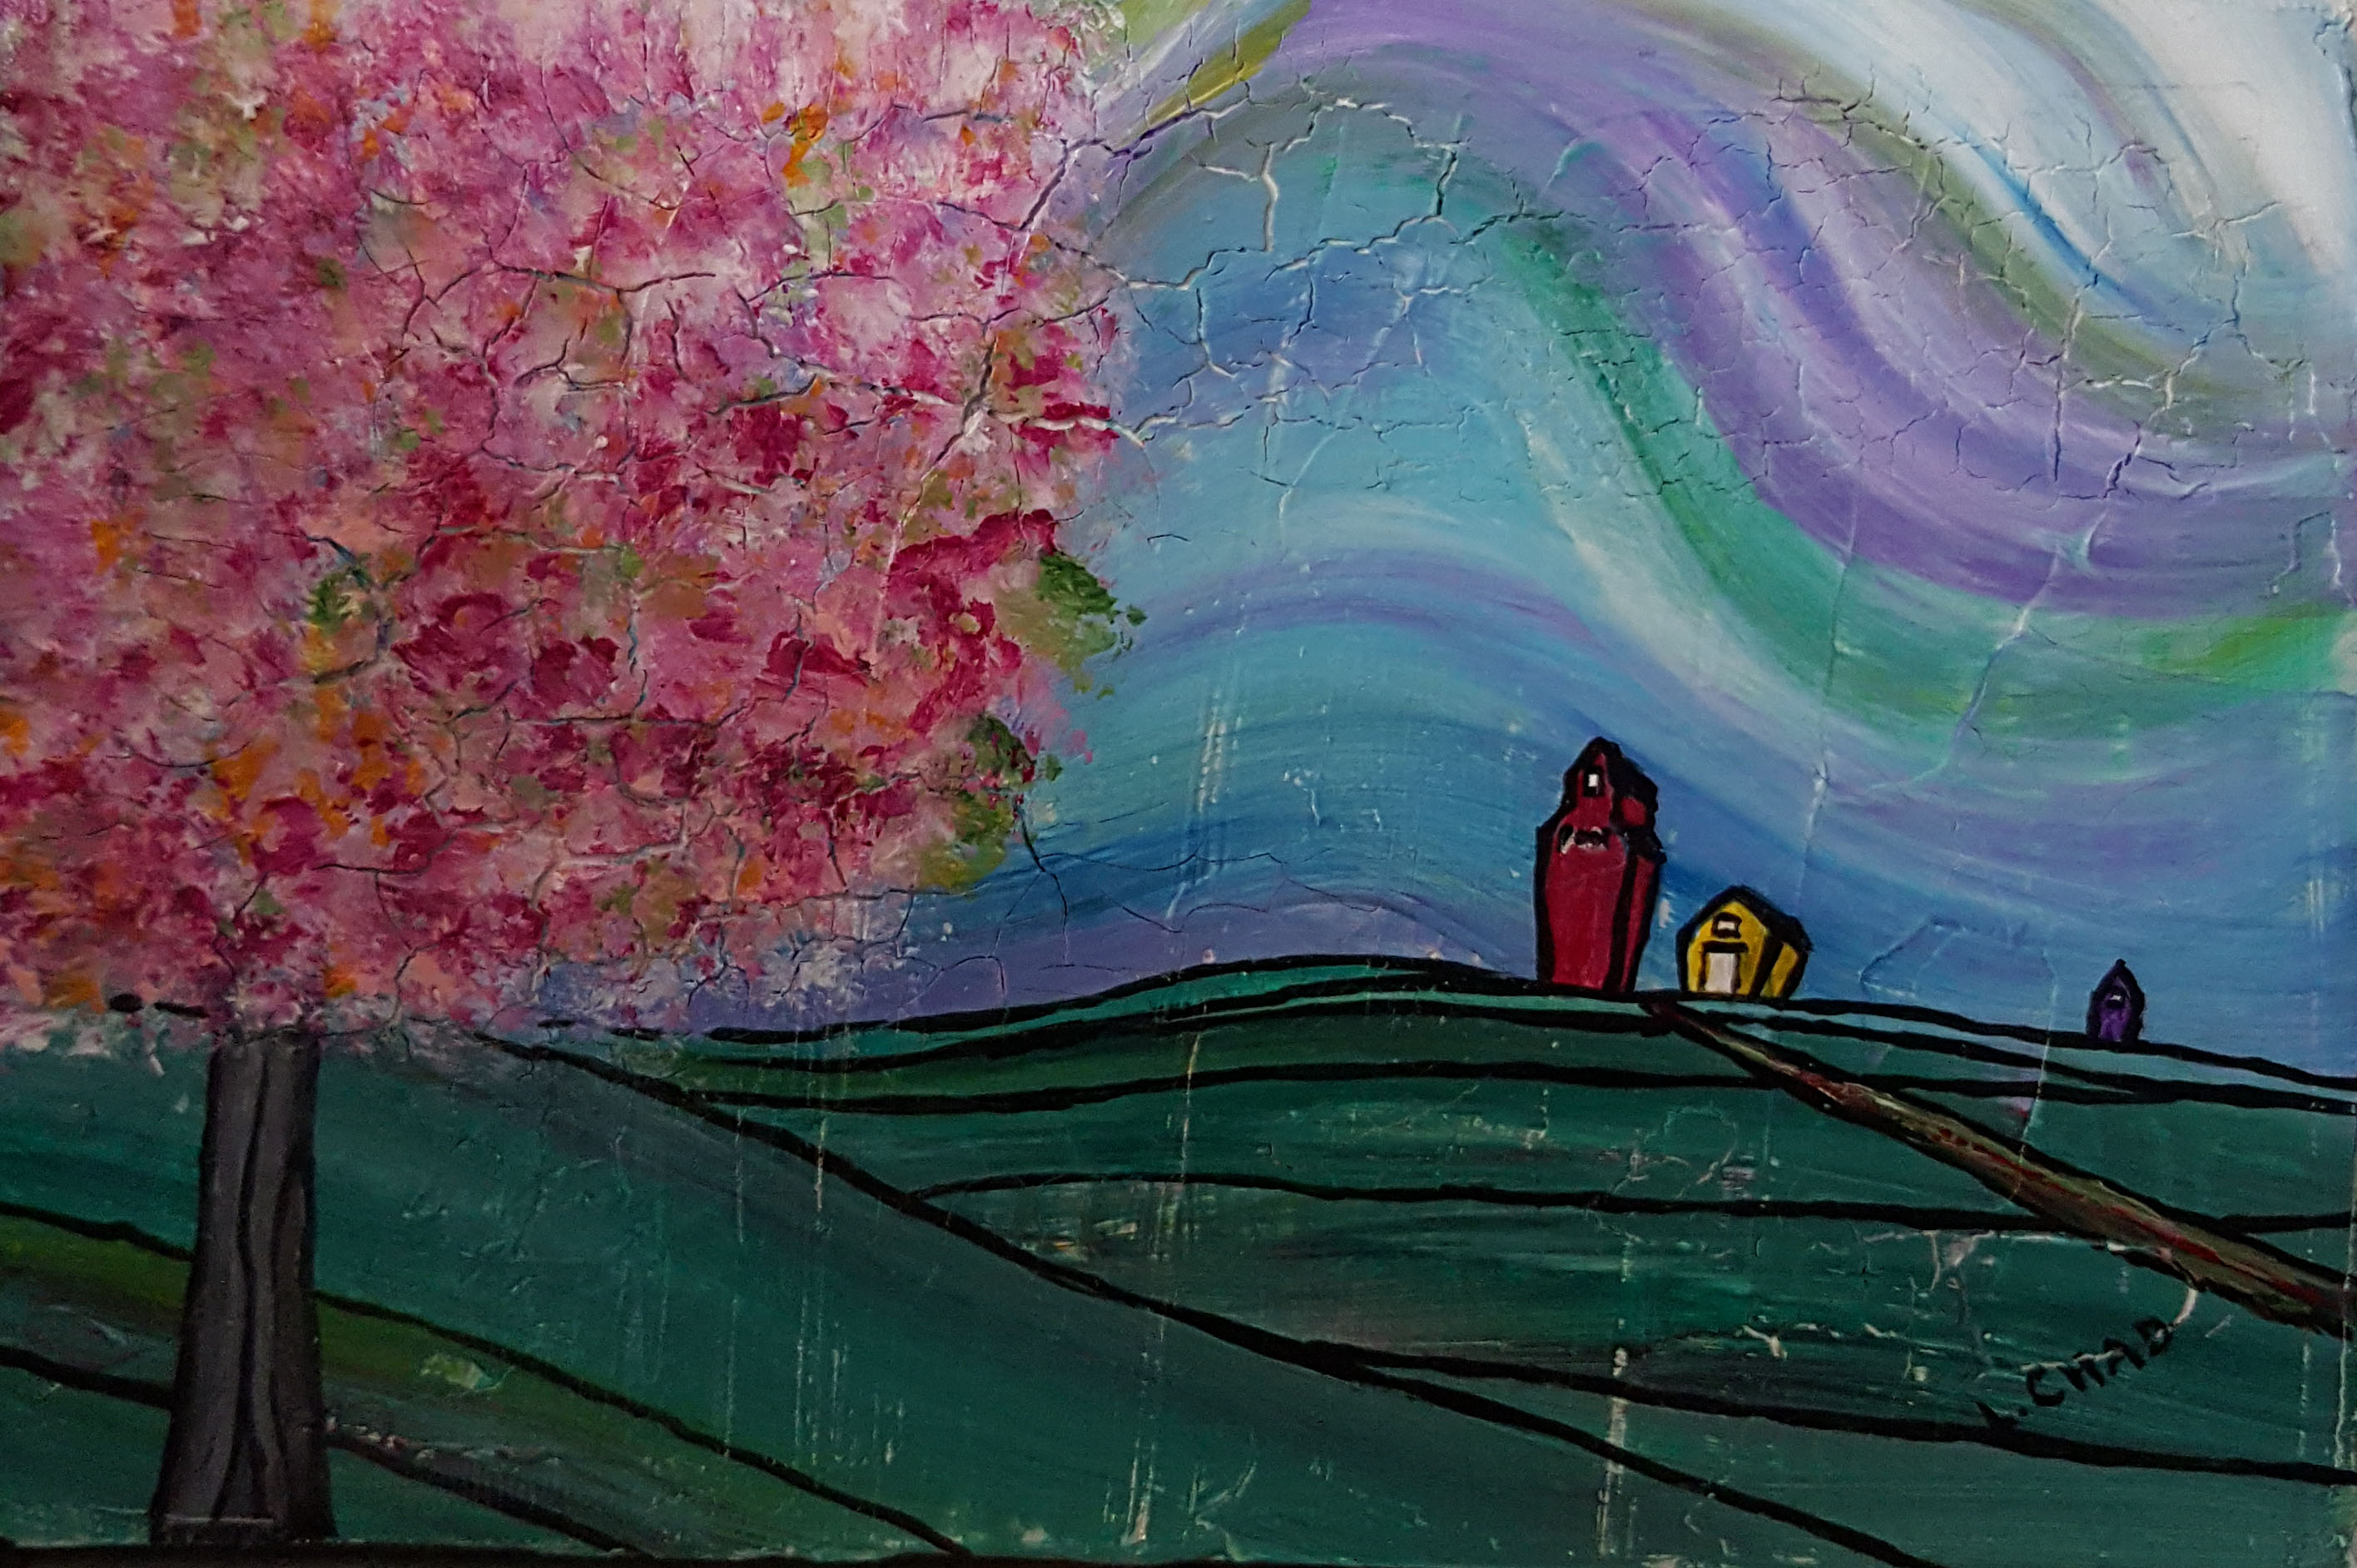 """Crabapple Prairie"" [2015] Acrylic on canvas. 4.75"" x 7"" (unframed with easel) SOLD"